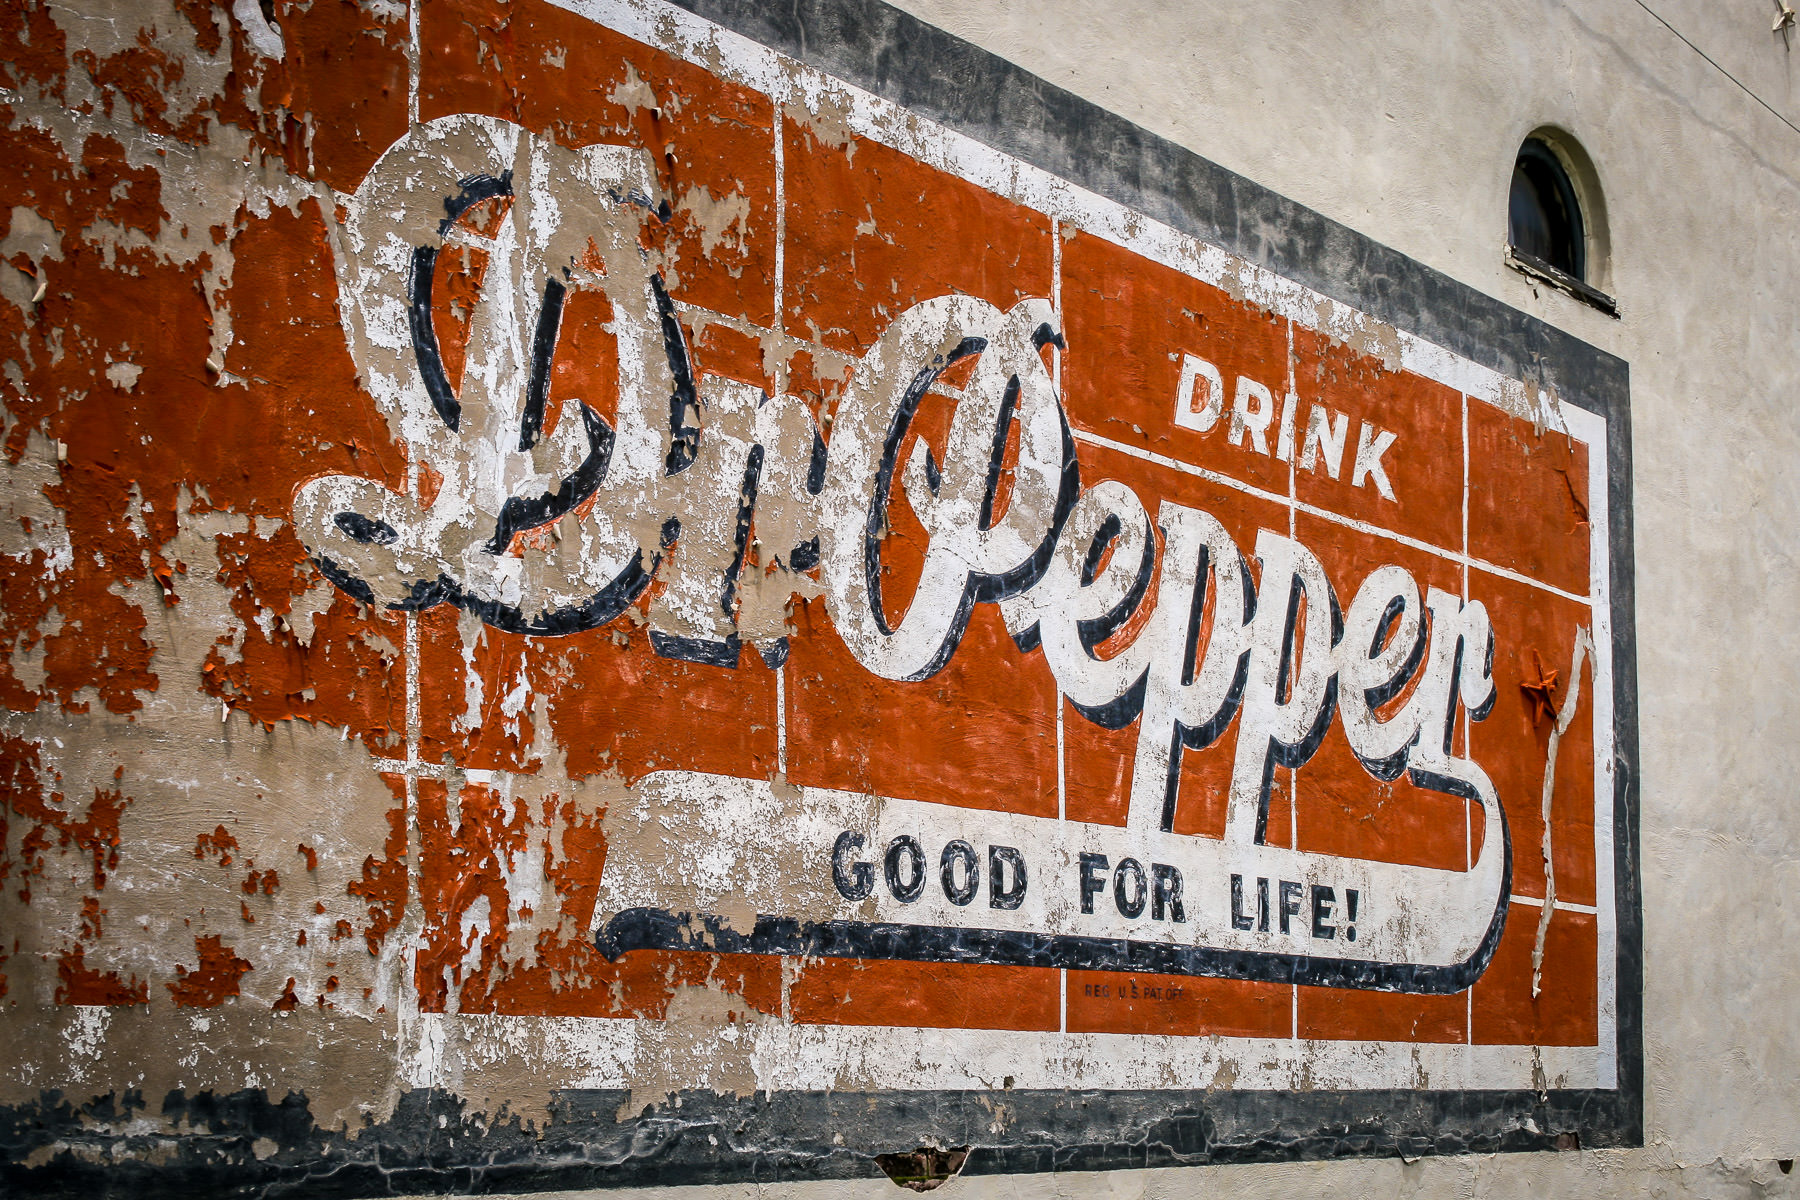 A cracked and fading Dr Pepper sign on the side of a decaying building in Downtown Pilot Point, Texas.